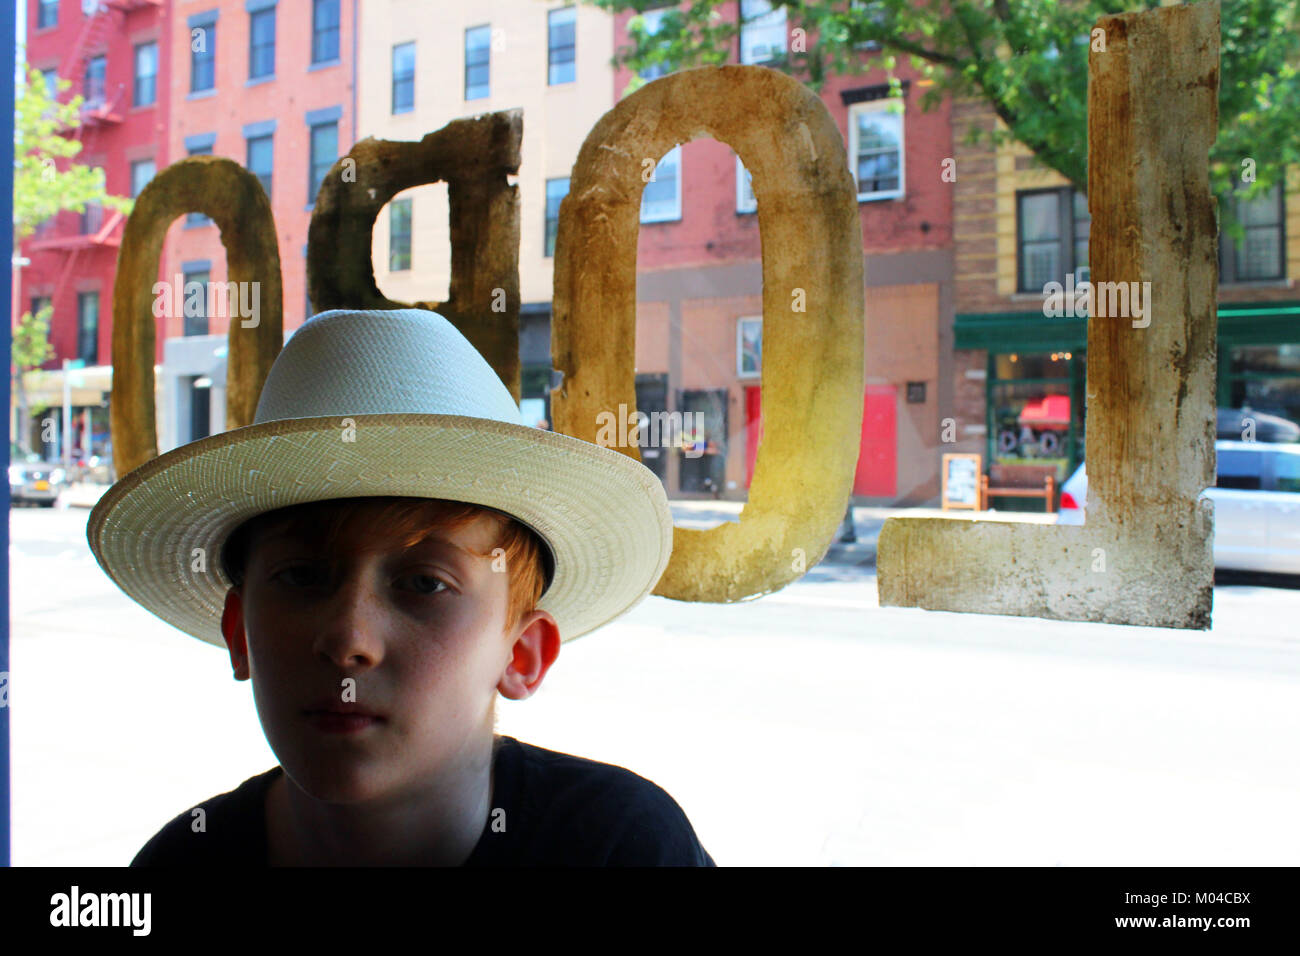 Red haired boy wearing cowboy hat stetson route ouverte dans lobo bar brooklyn new york Banque D'Images